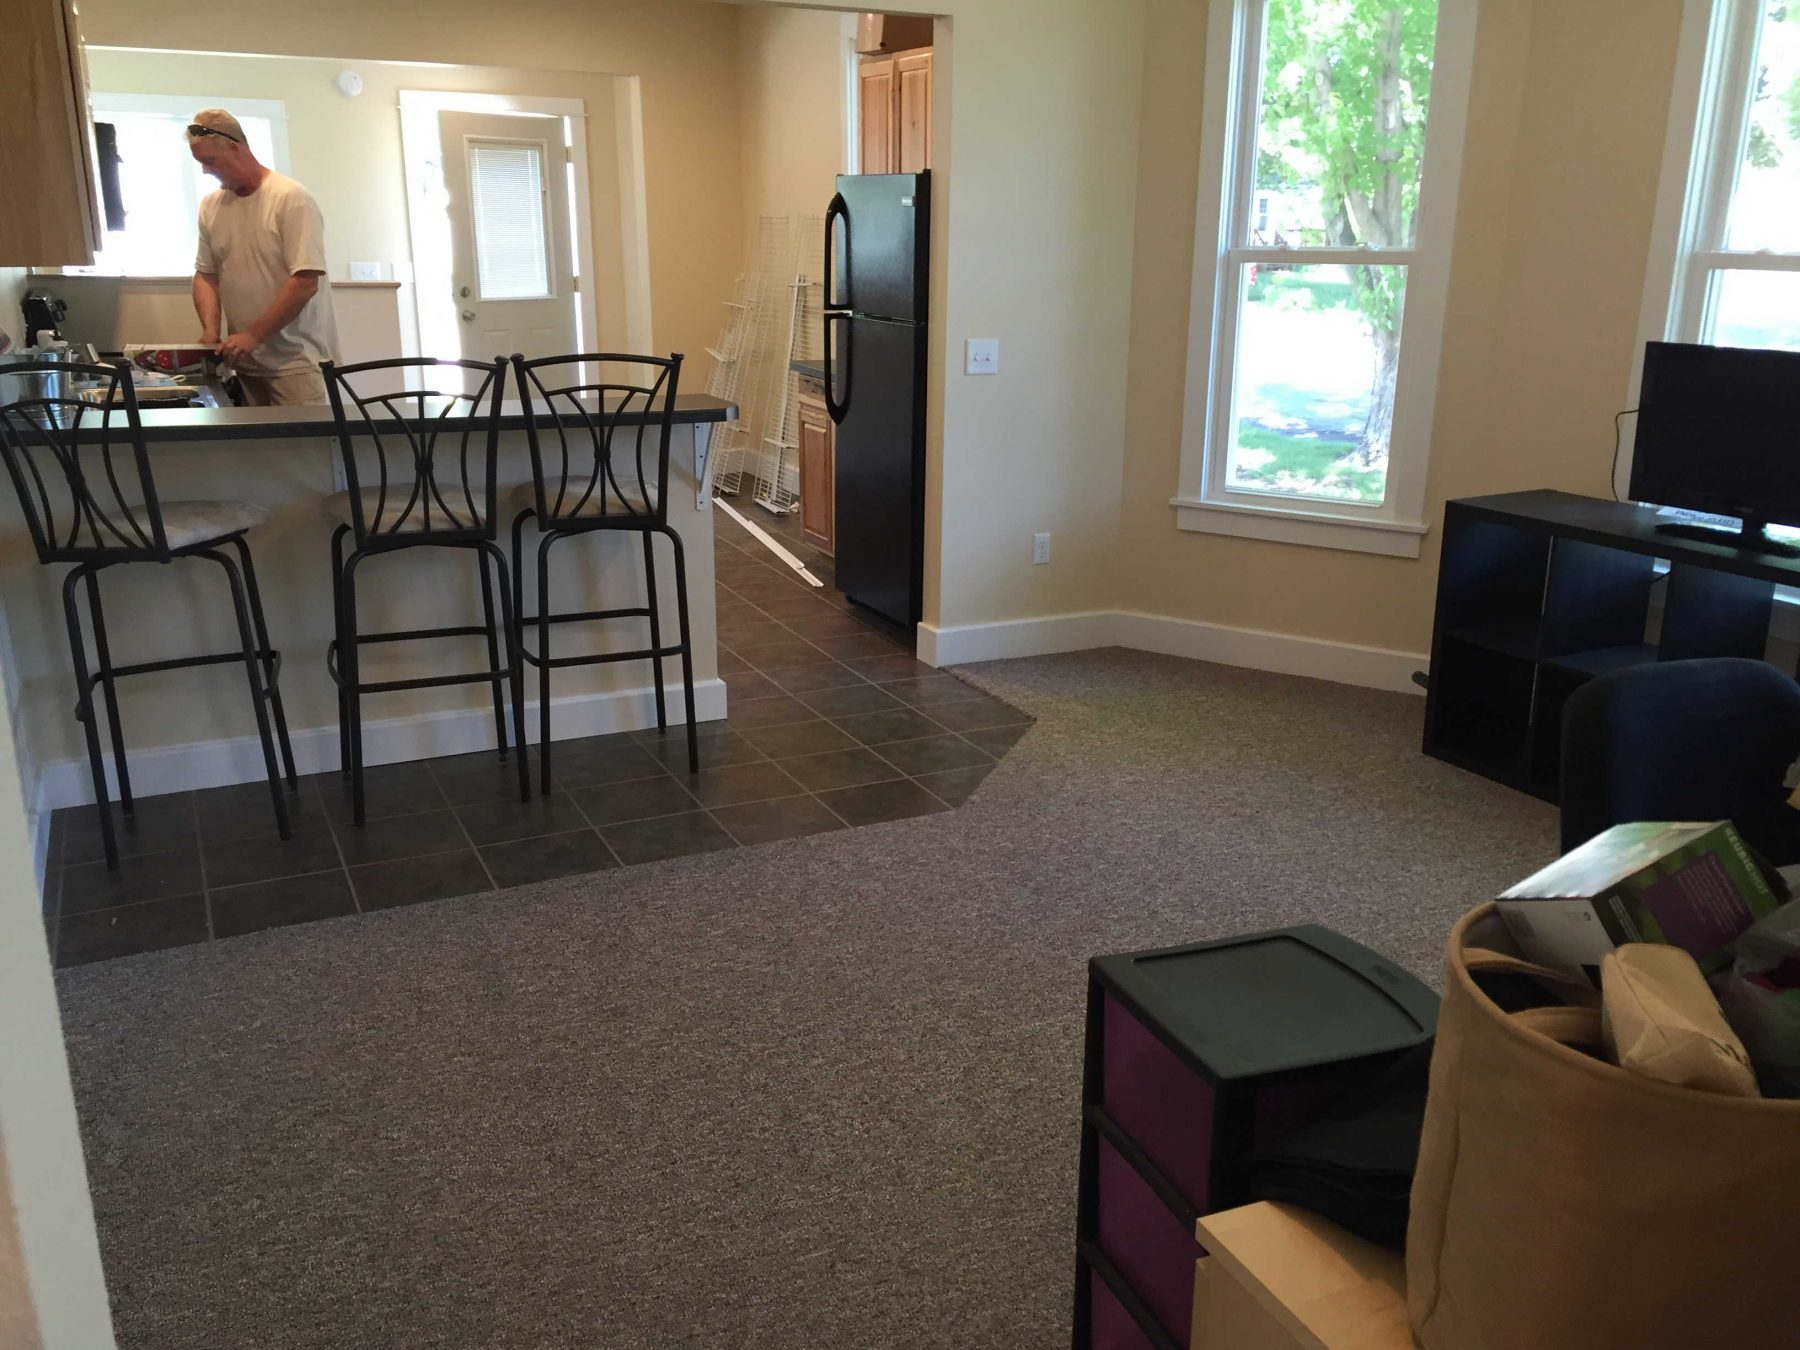 3 bedroom house 2 1 2 blocks from winona state university off campus student housing near for 1 bedroom apartments winona mn